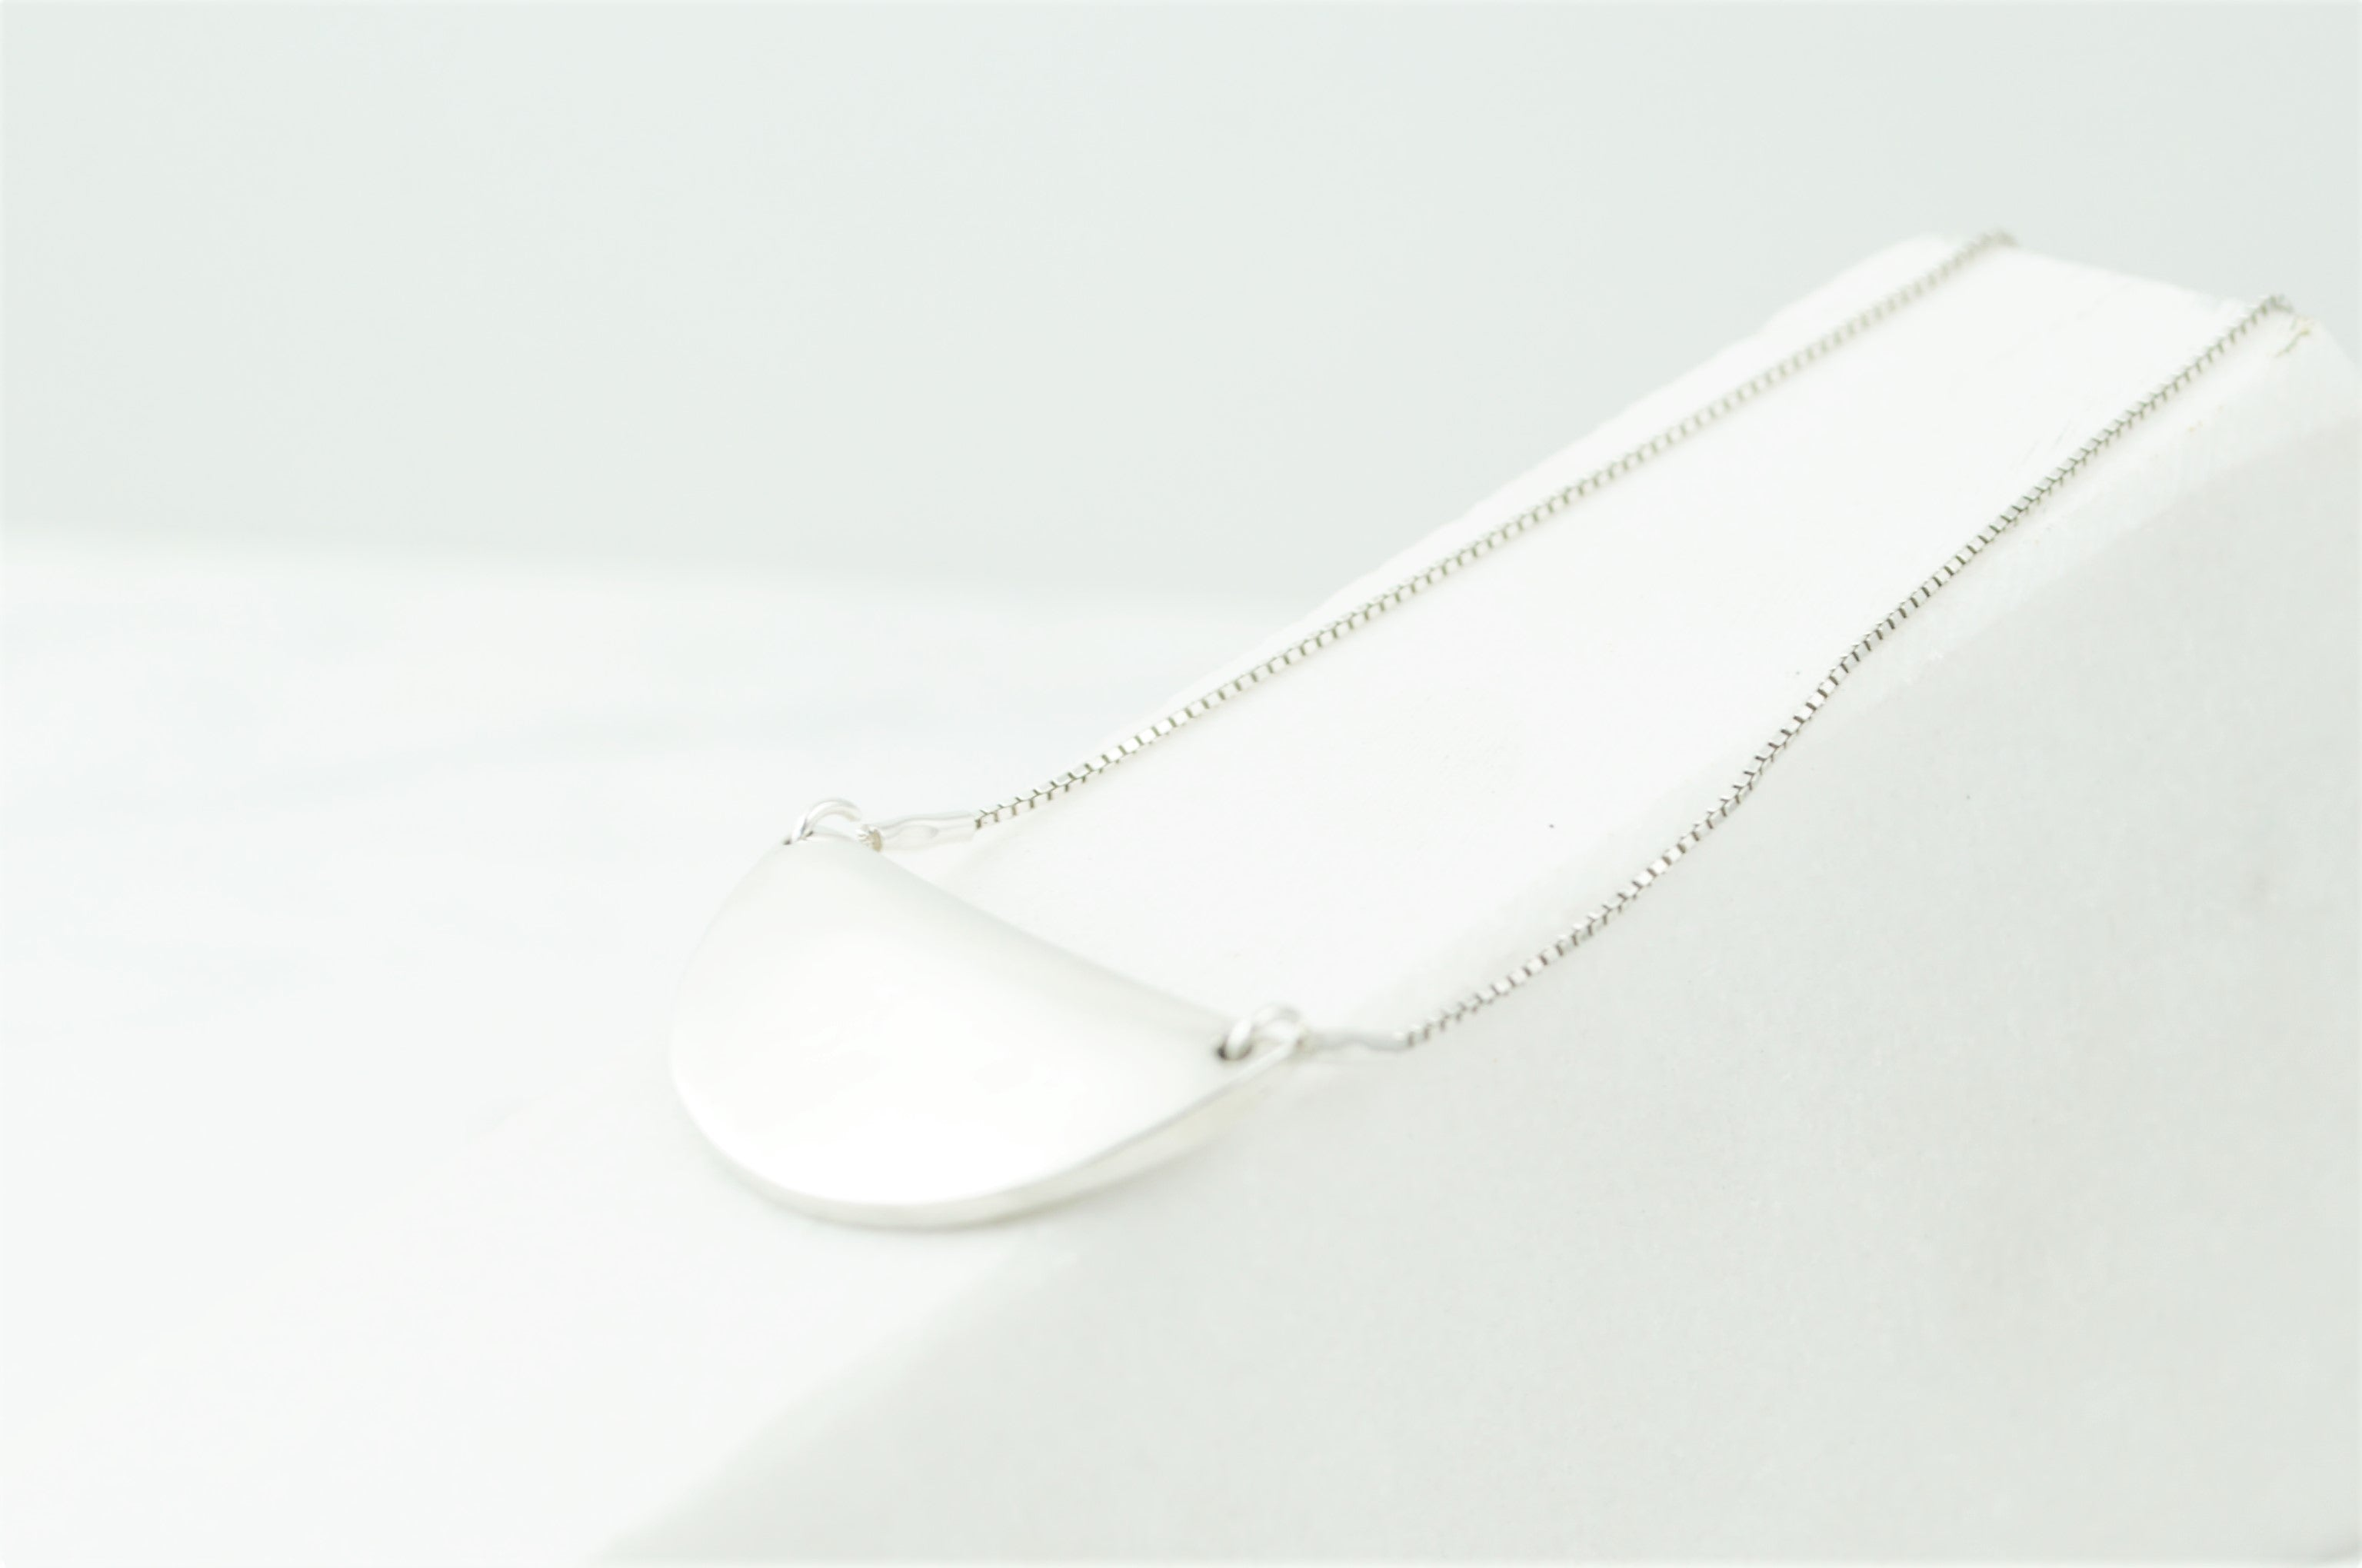 The Mussel Pendant